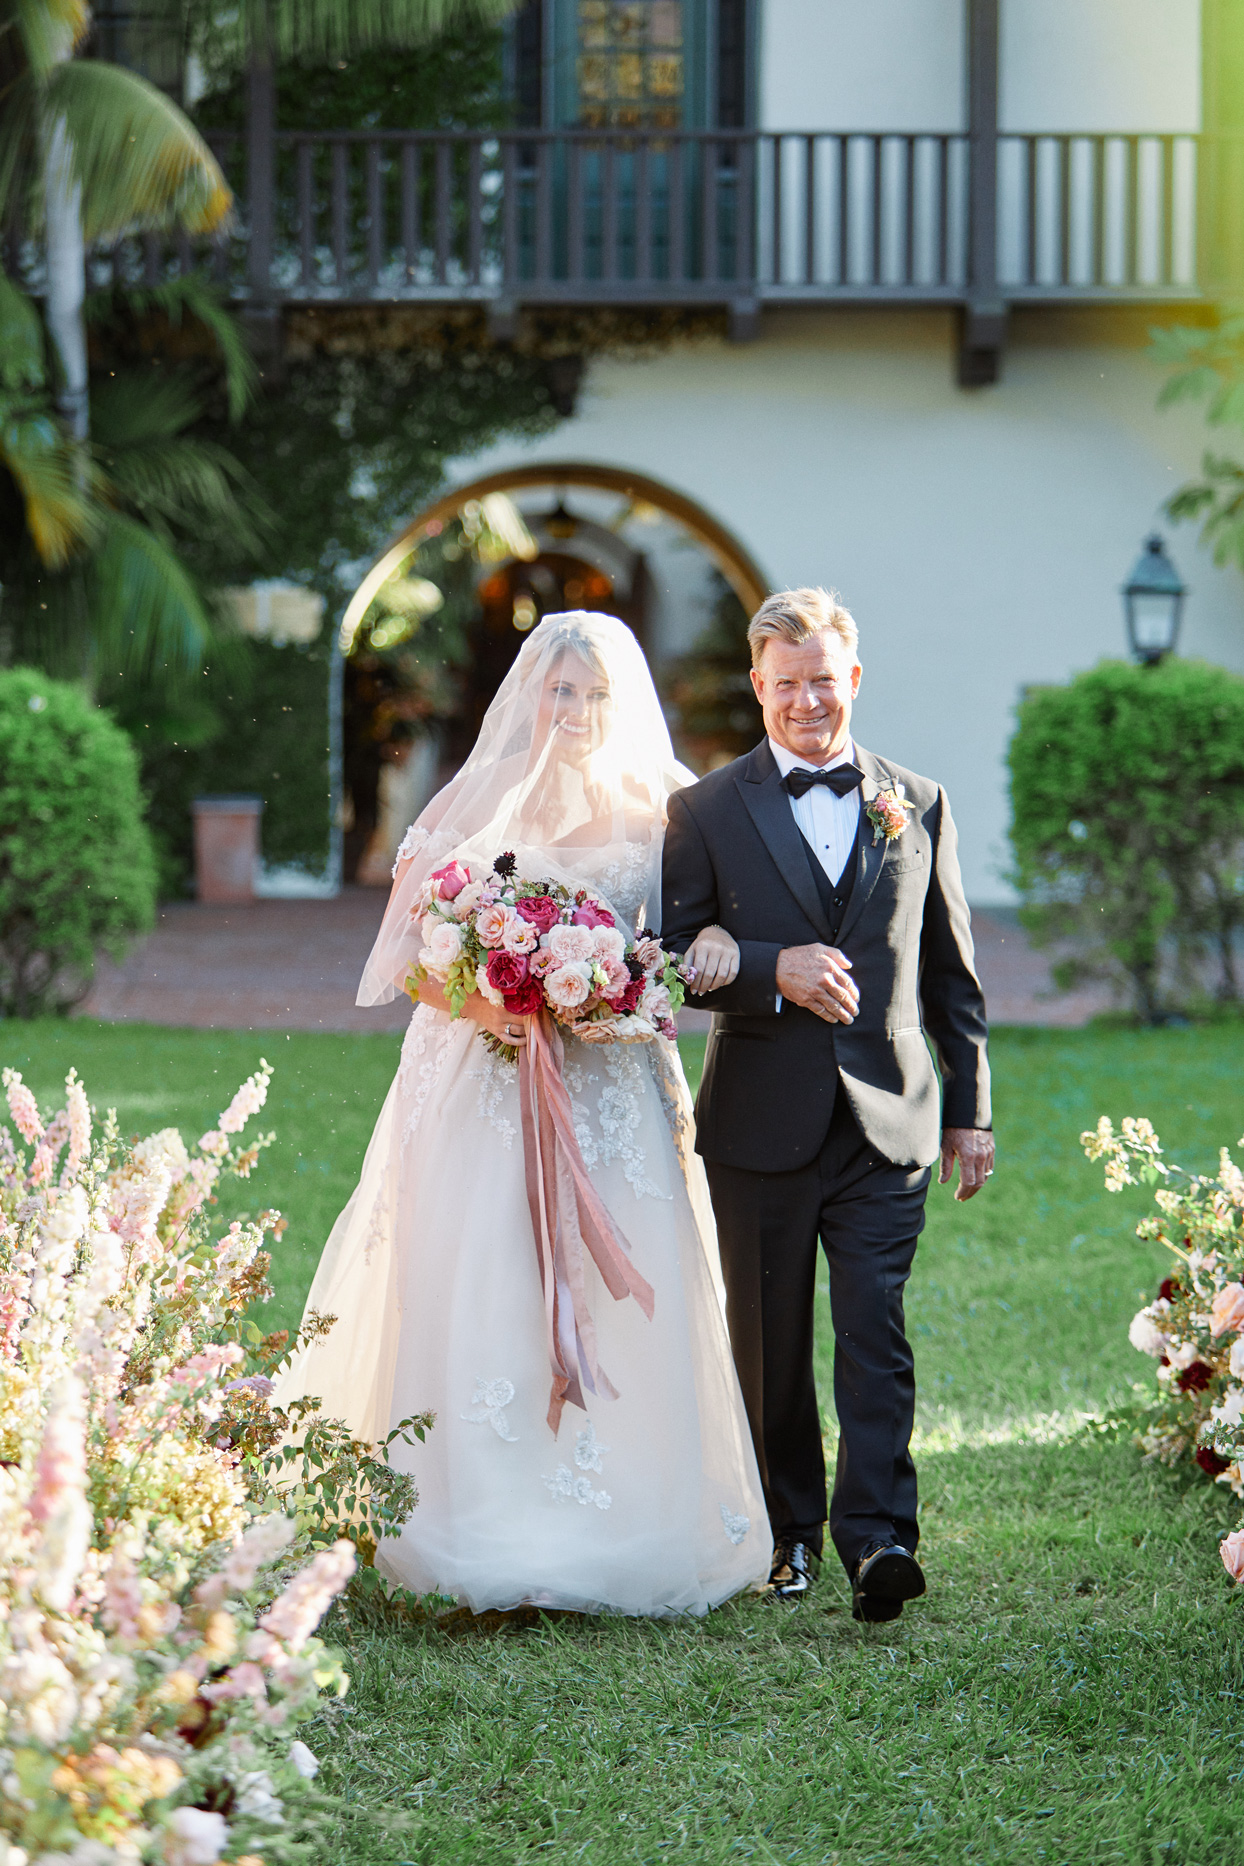 bride wearing vail walking down aisle with father outside